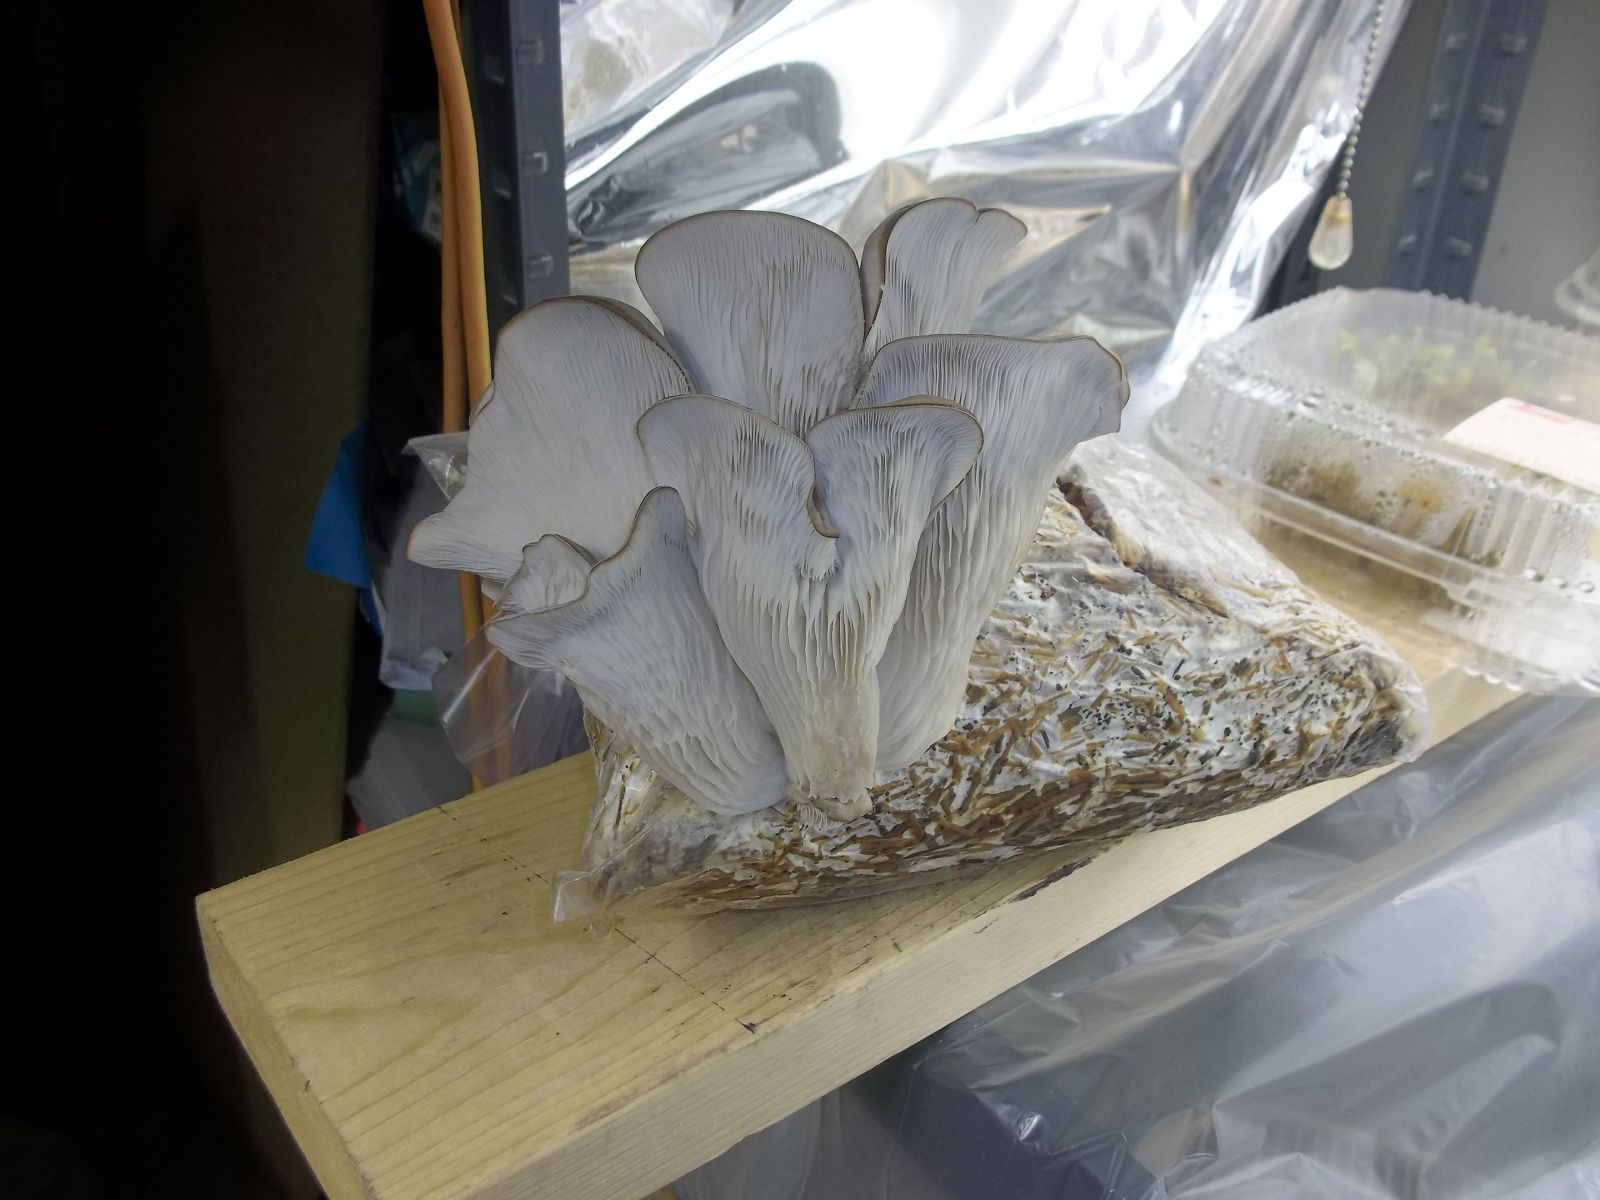 Oyster Mushroom Final Photo Before Picking